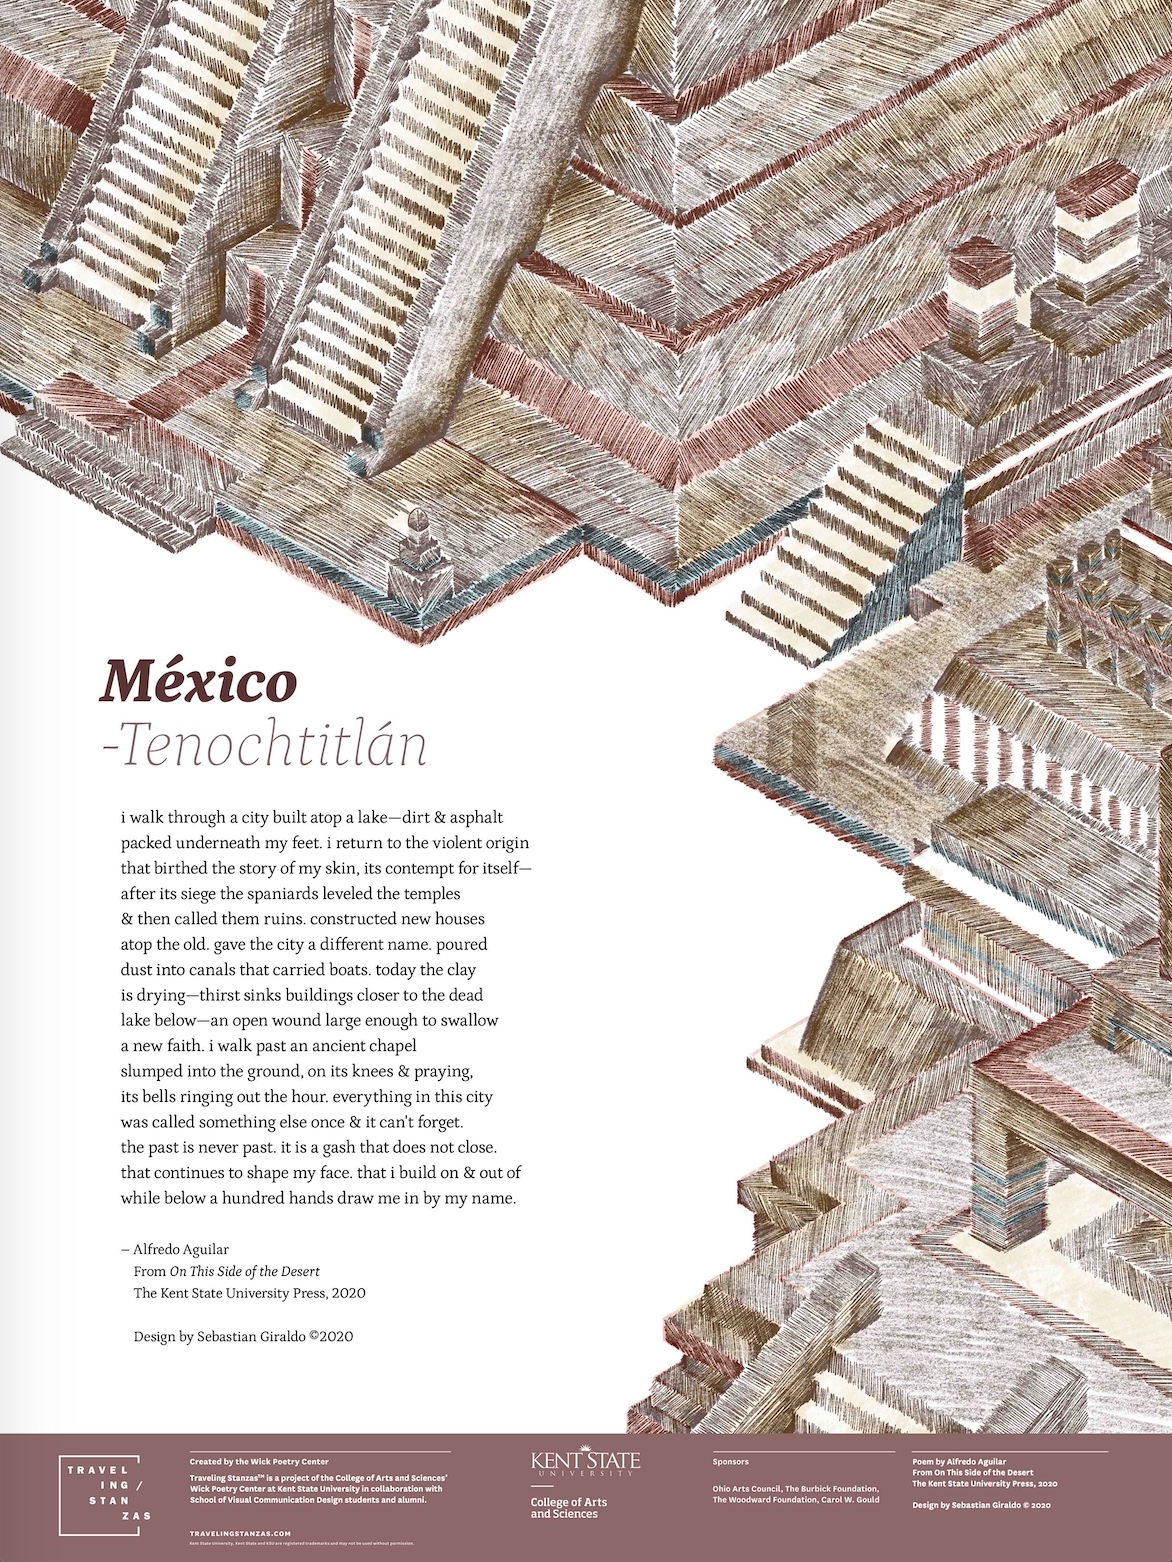 Mexico - Tenochtitlan